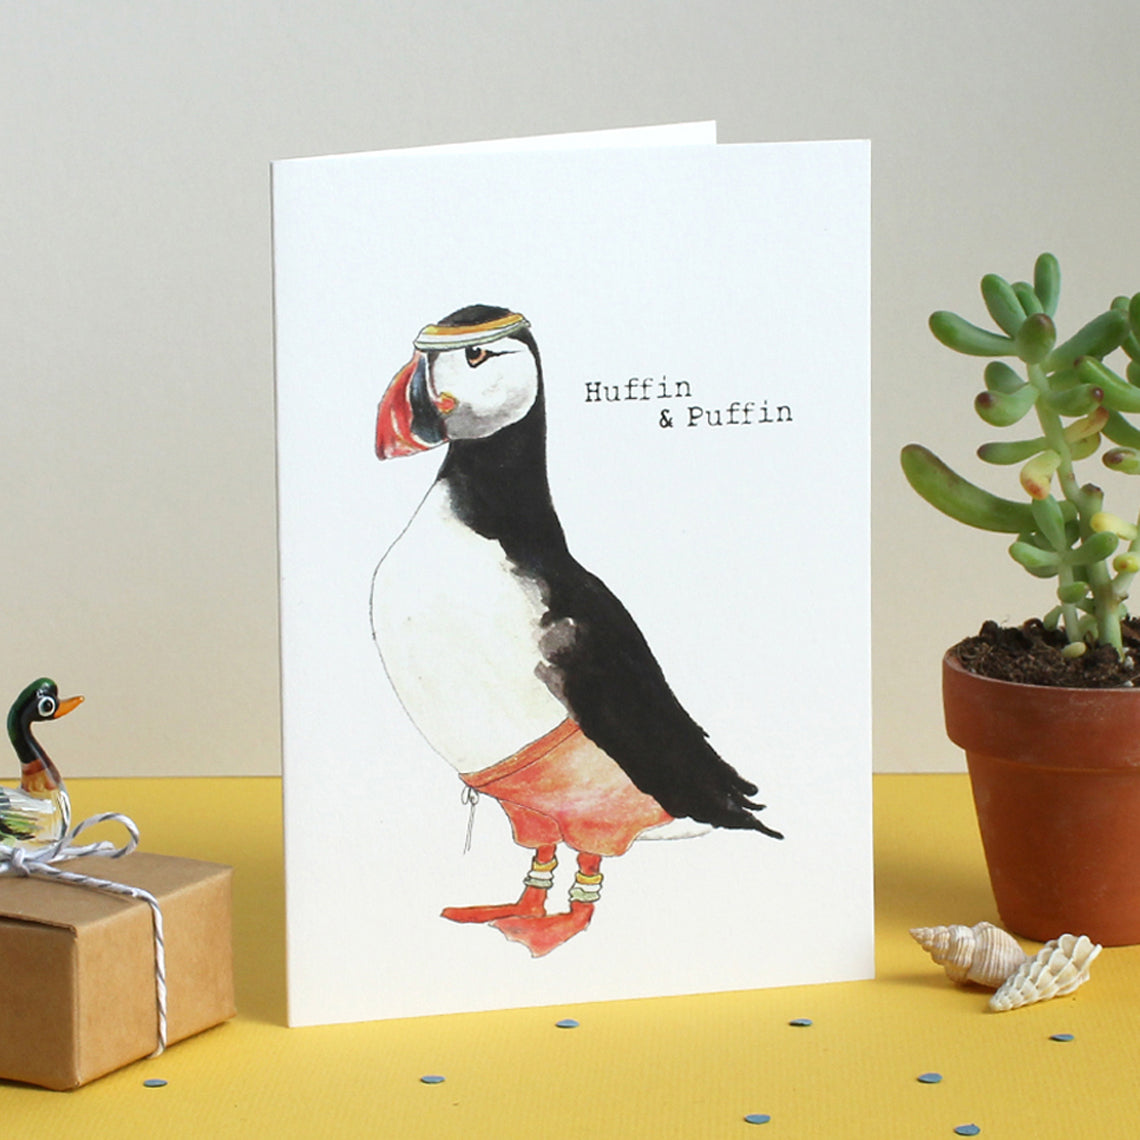 Huffin and puffin card